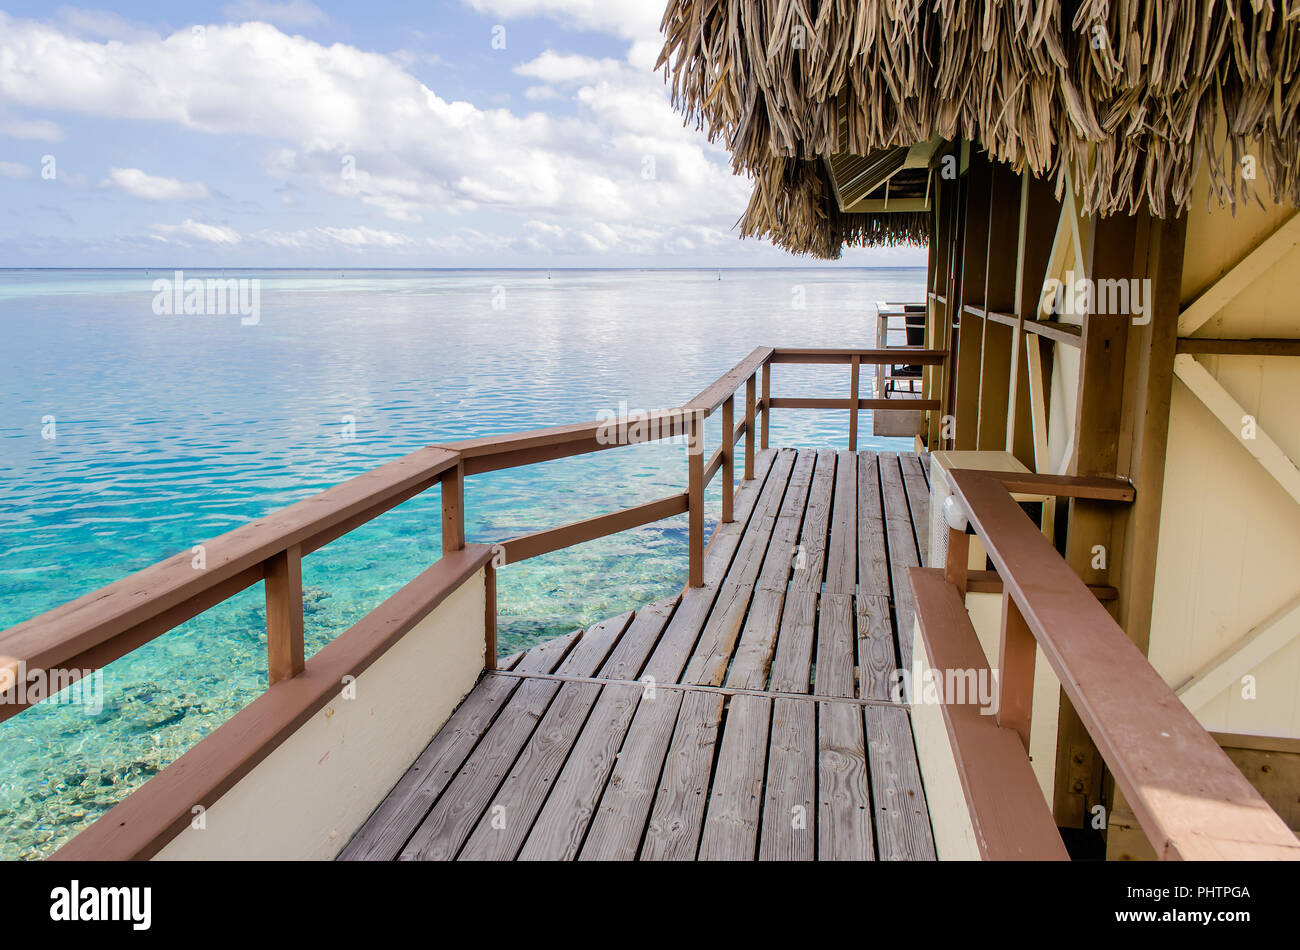 Overwater bungalows in Moorea, French Polynesia - Stock Image